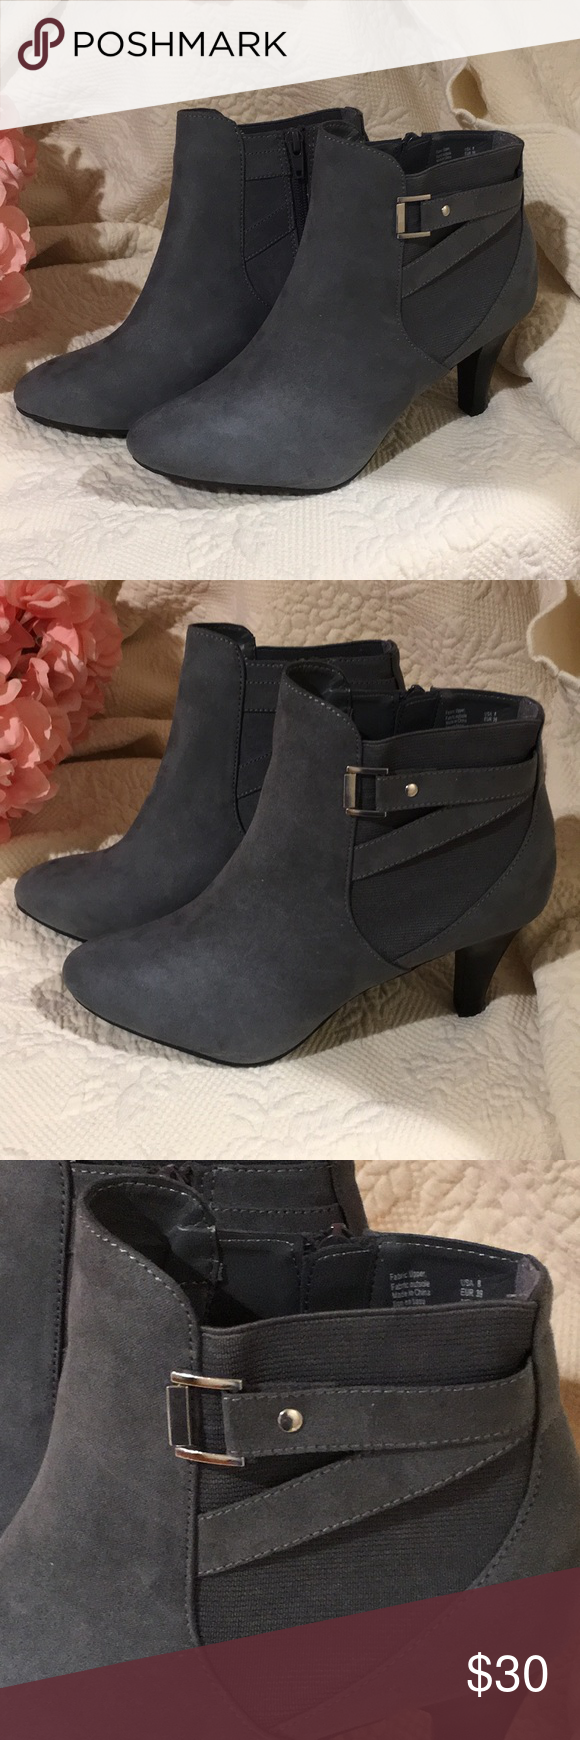 NWT Dexflex Comfort Gray Ankle Boots